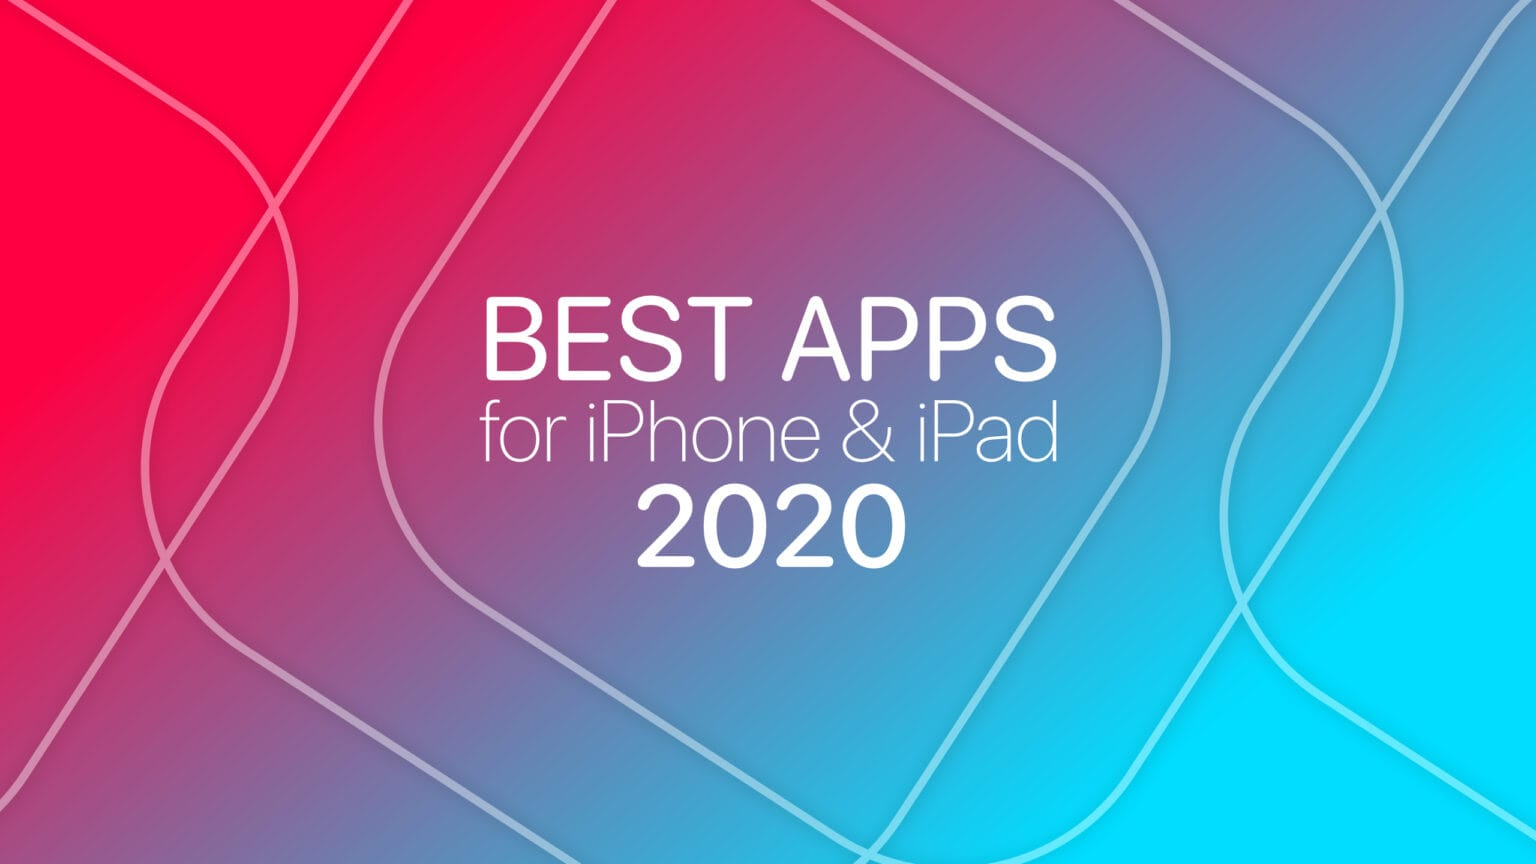 Best apps for new iPhone or iPad 2020